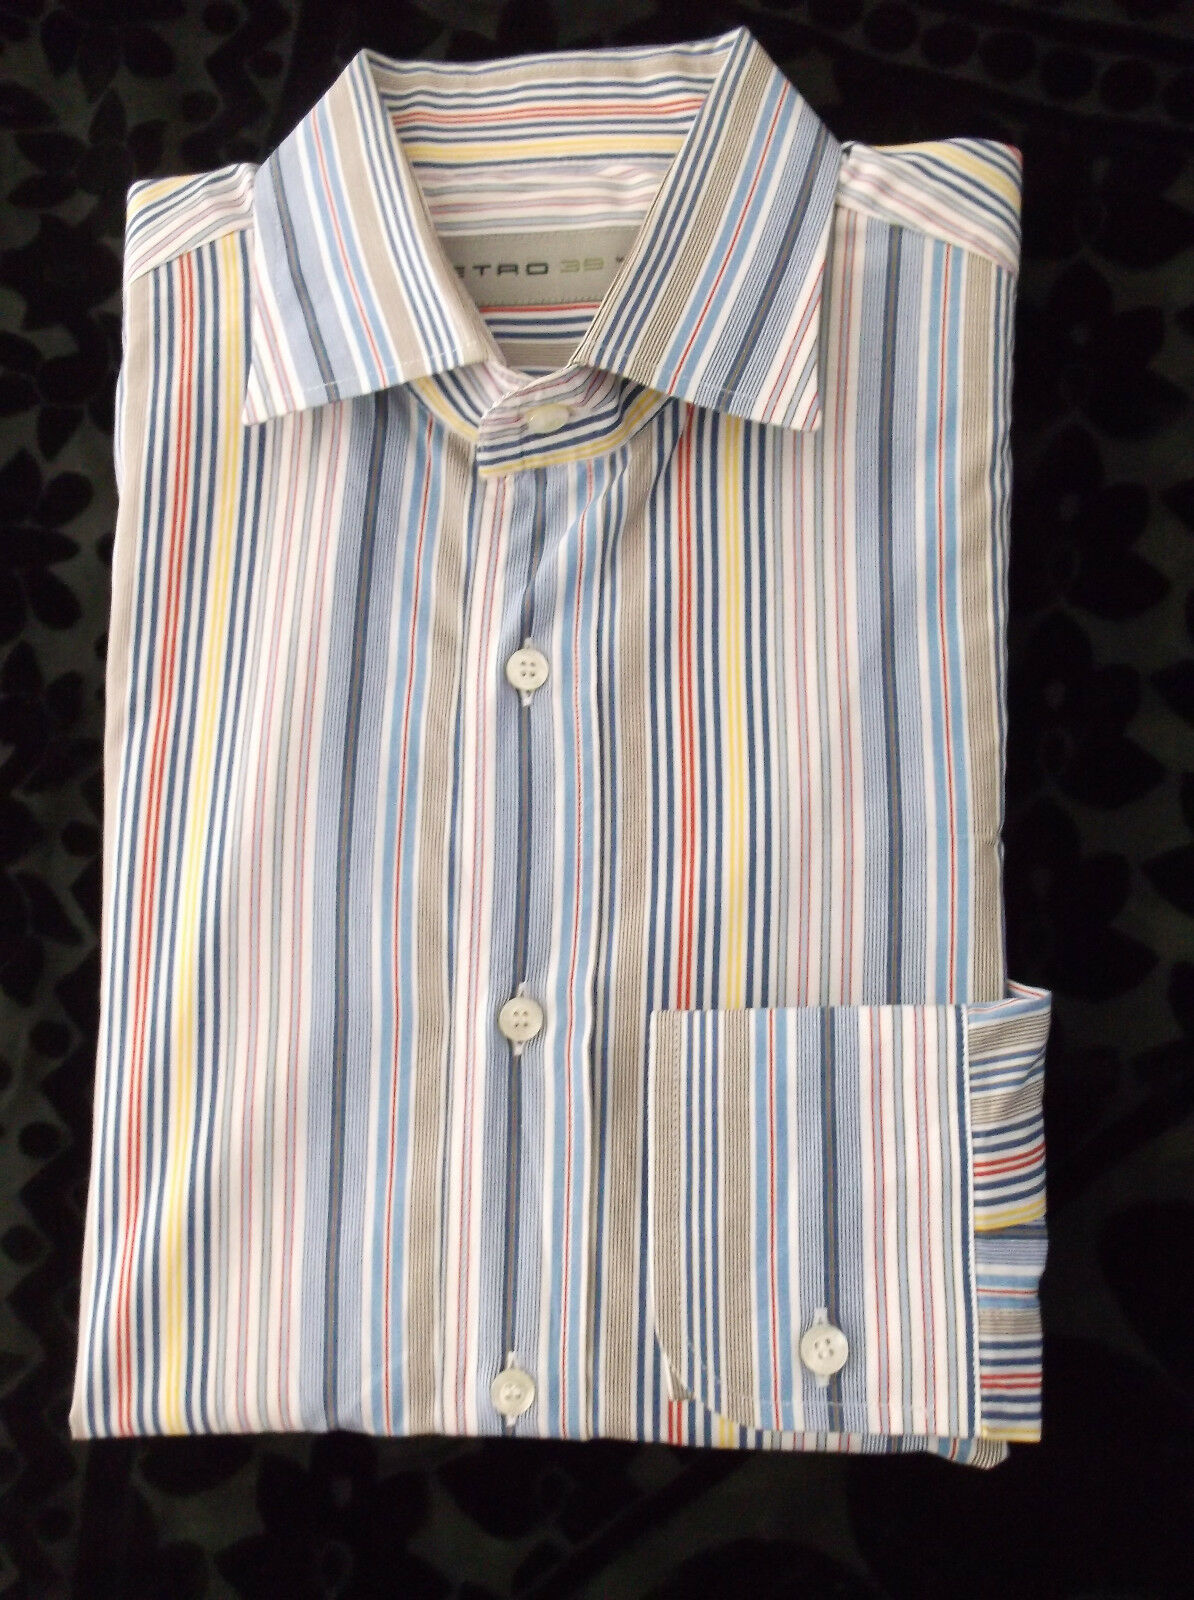 ETRO MILANO  Herren Multicolor Striped Casual Shir Slim Fit Größe  15 1/2  39